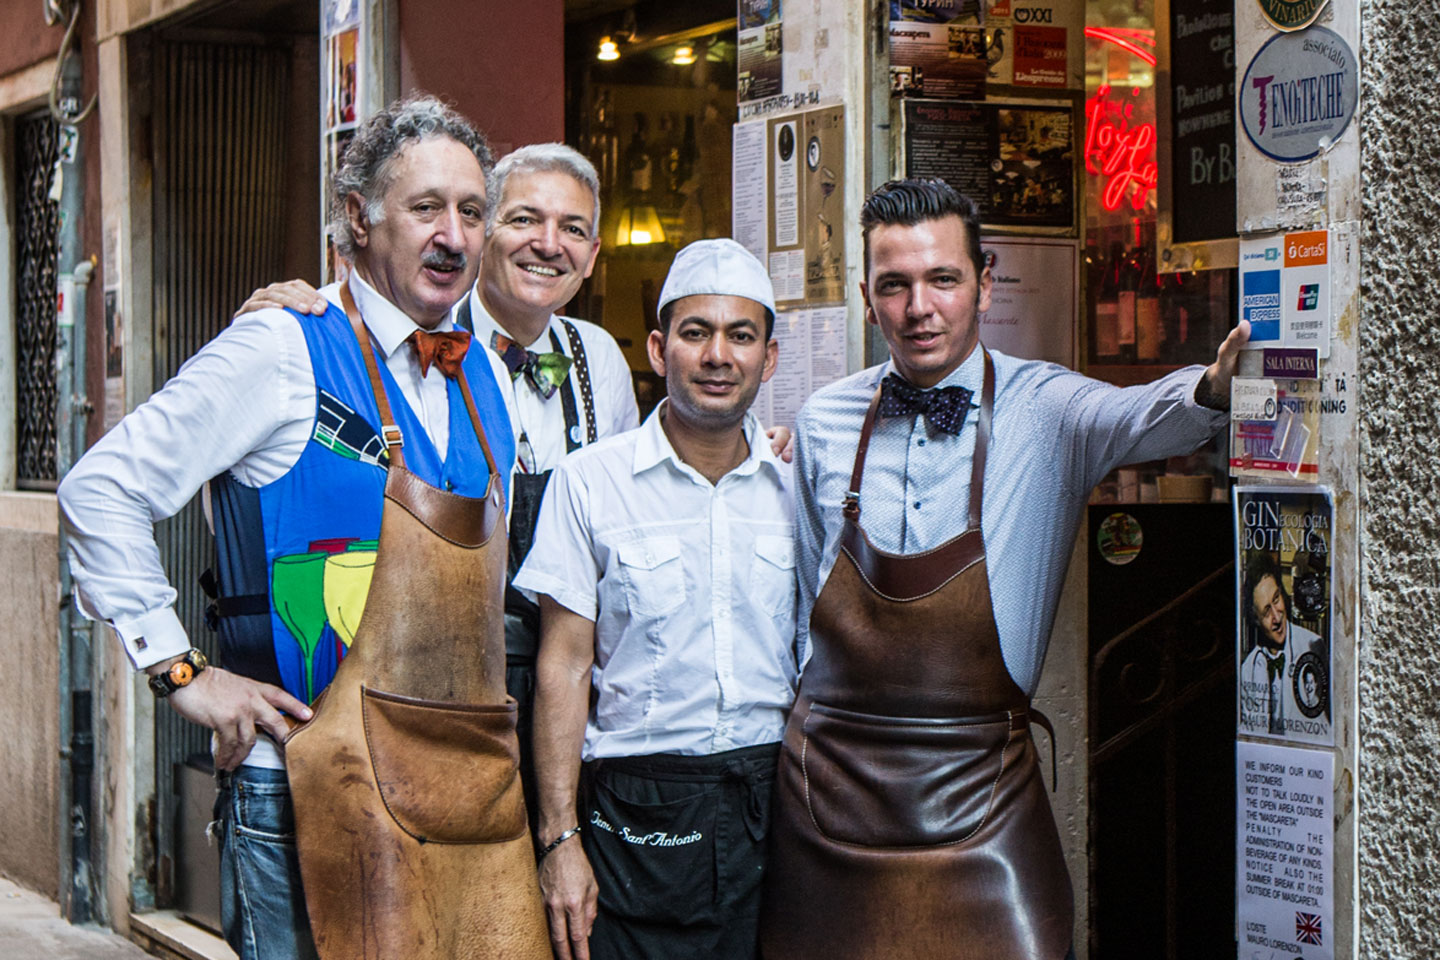 Lorenzon's colorful hand-painted bowtie and leather apron